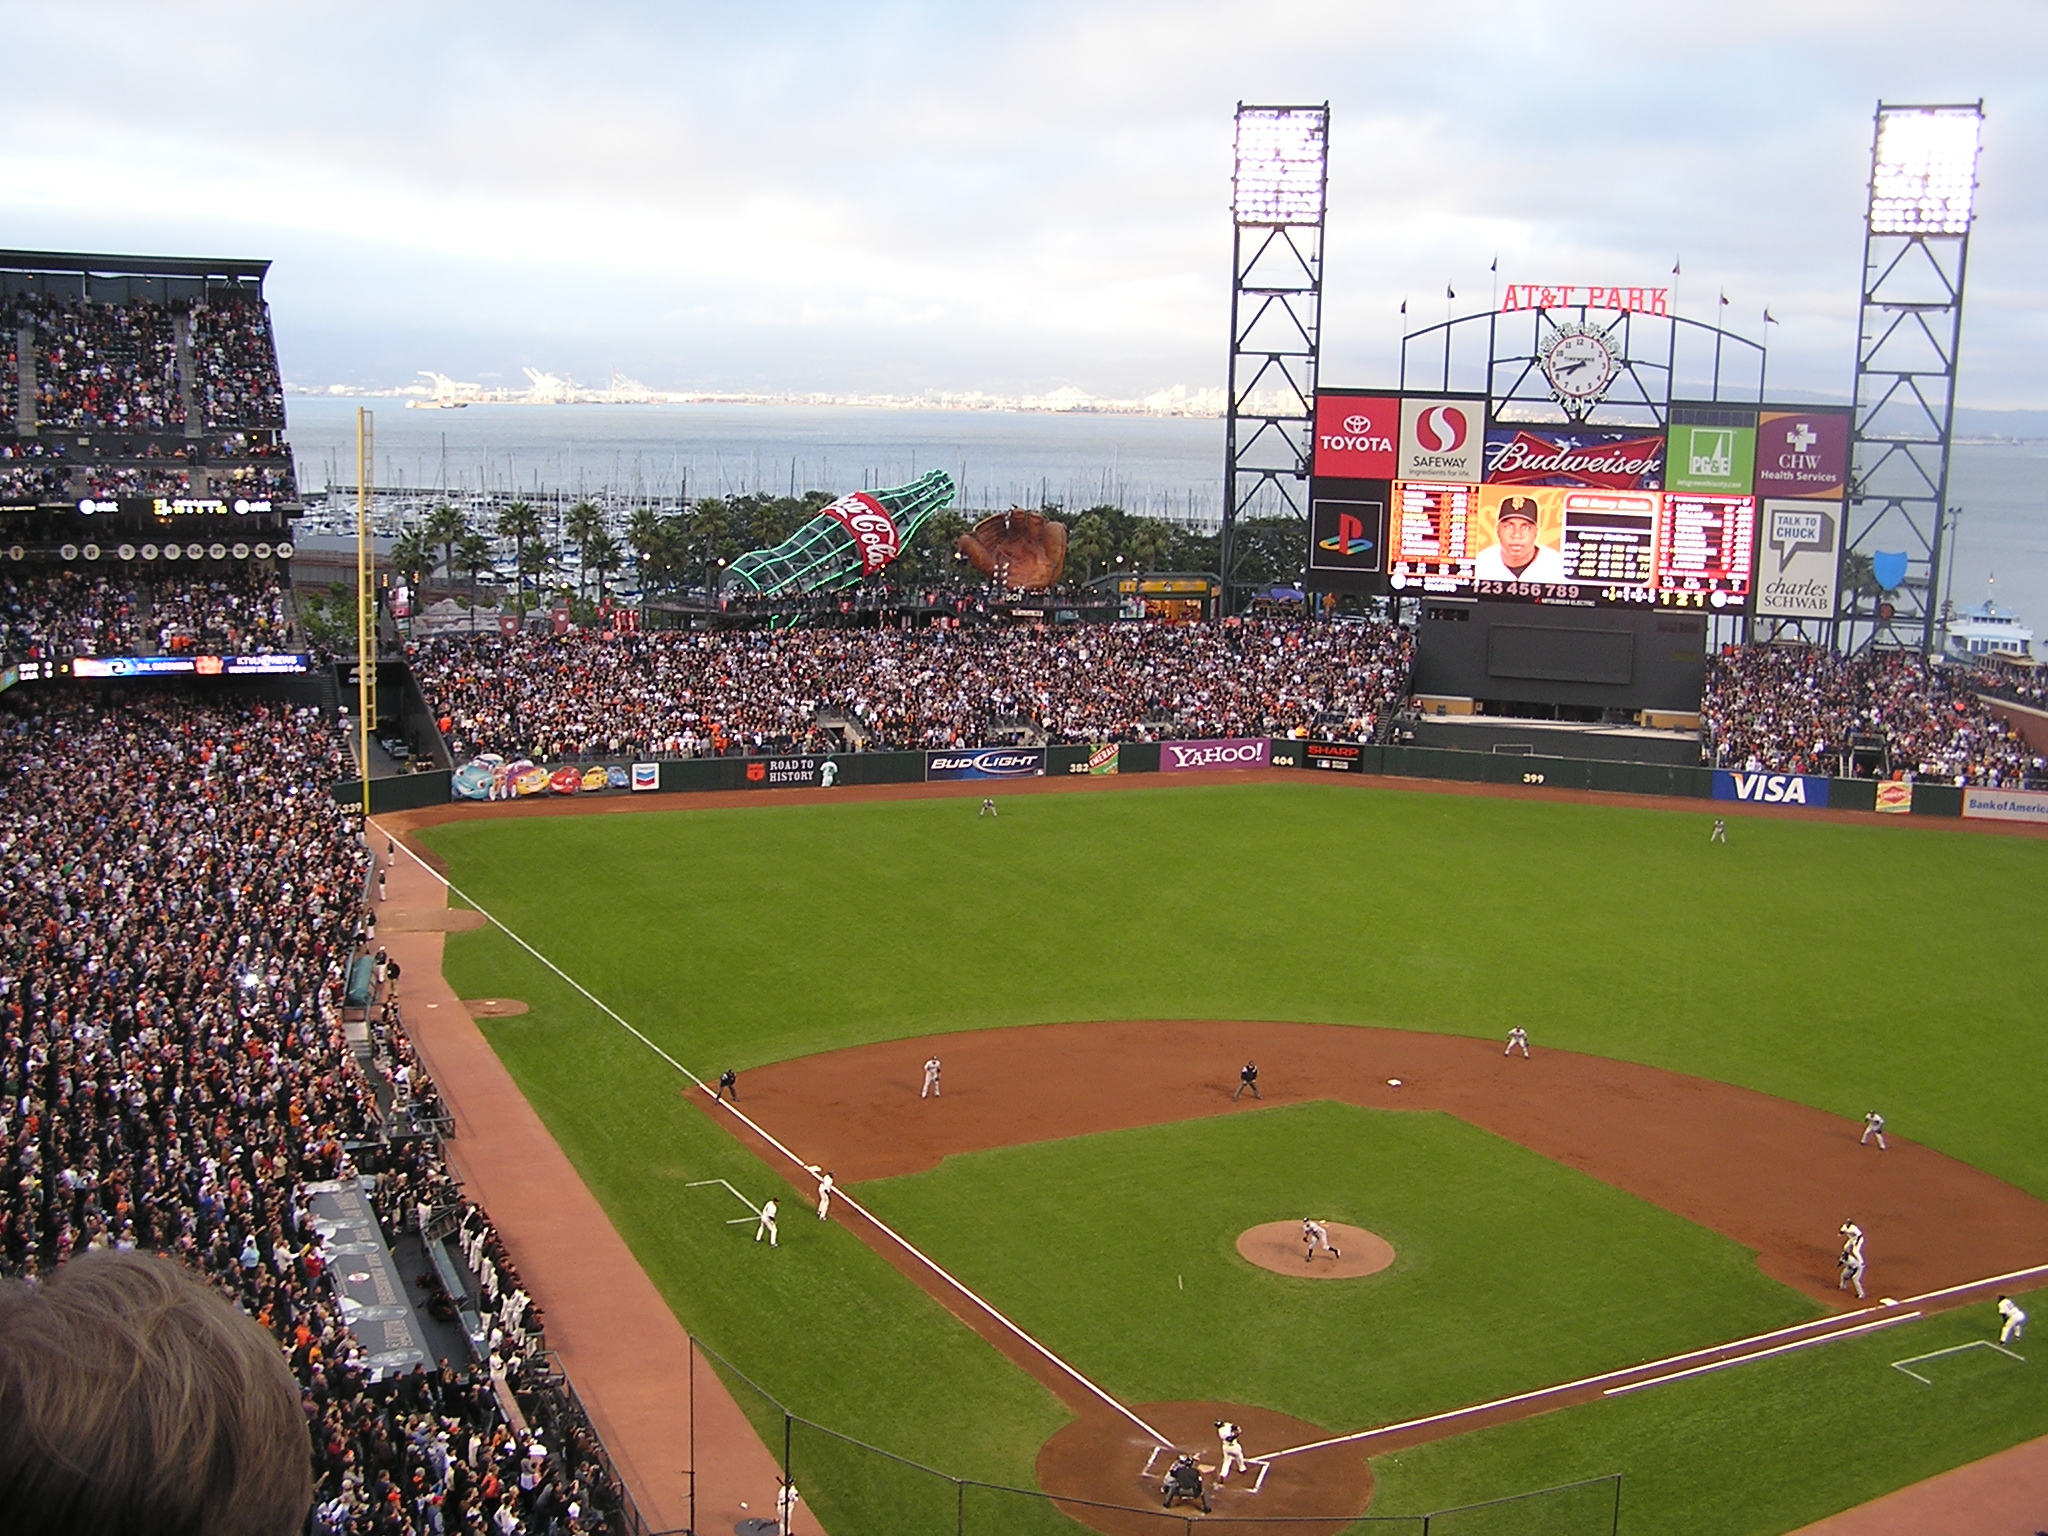 Bonds connects - But not 756 - AT&T Park, San Fran